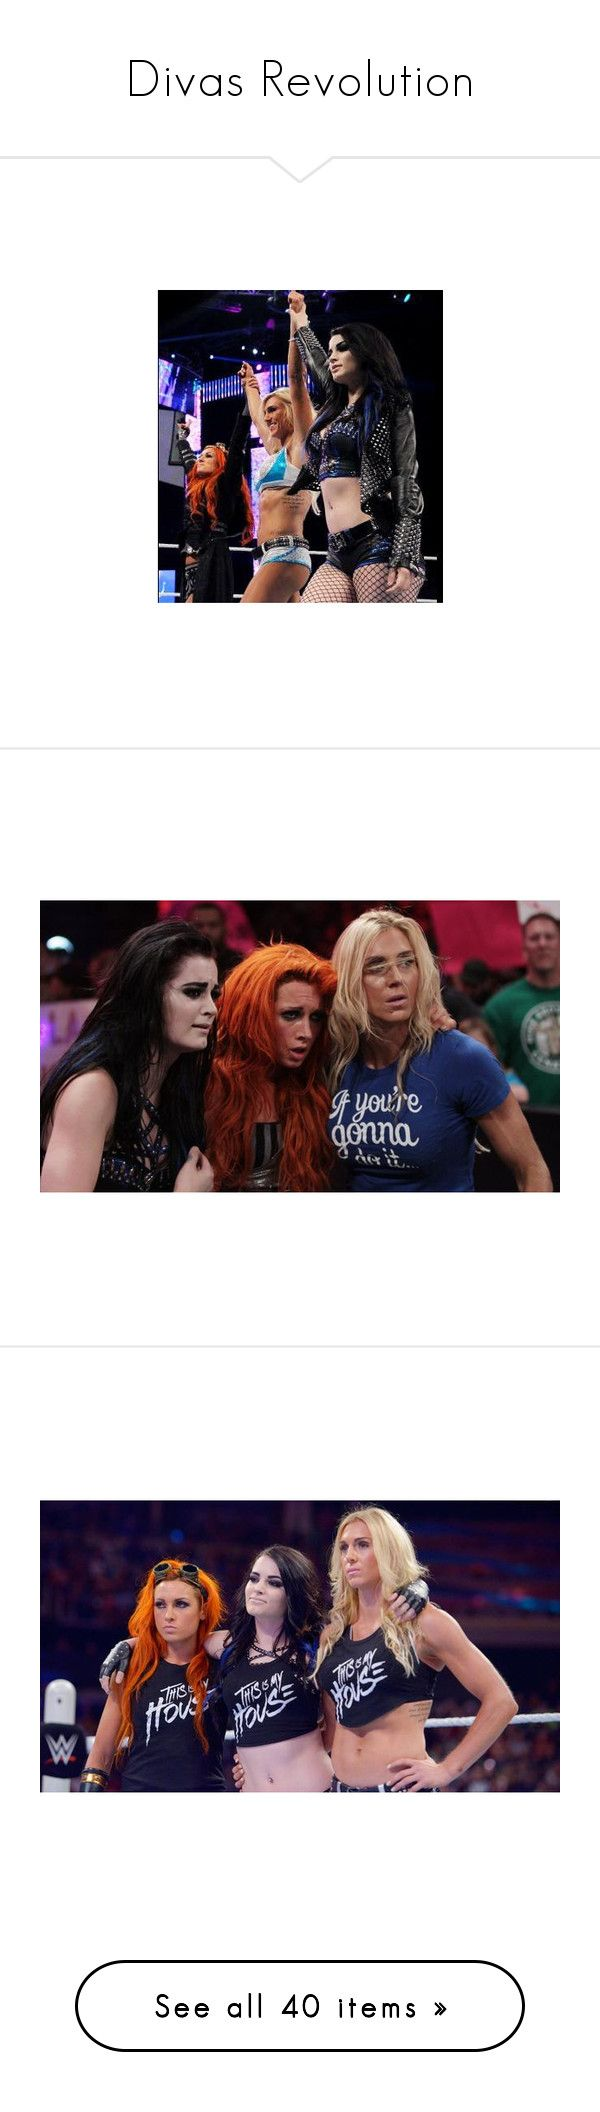 """""""Divas Revolution"""" by queenreigns-916 ❤ liked on Polyvore featuring wwe, people, becky lynch, divas, wwe diva, charlotte, wwe figures, paige, superstars and nikki bella"""